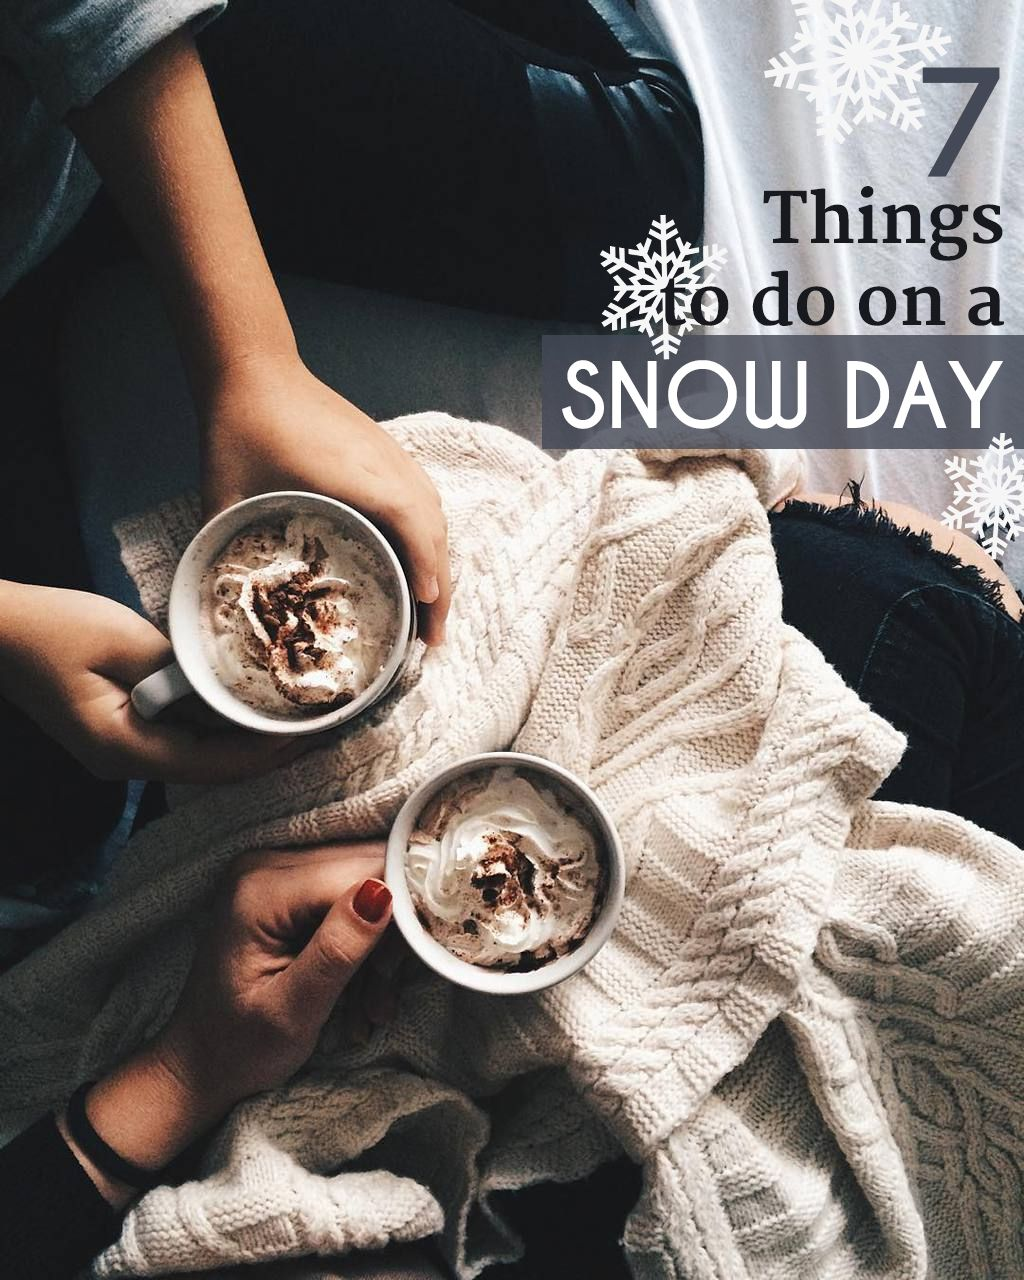 7 Things To Do On A Snow Day | Merry christmas baby, Christmas fun, Winter fun